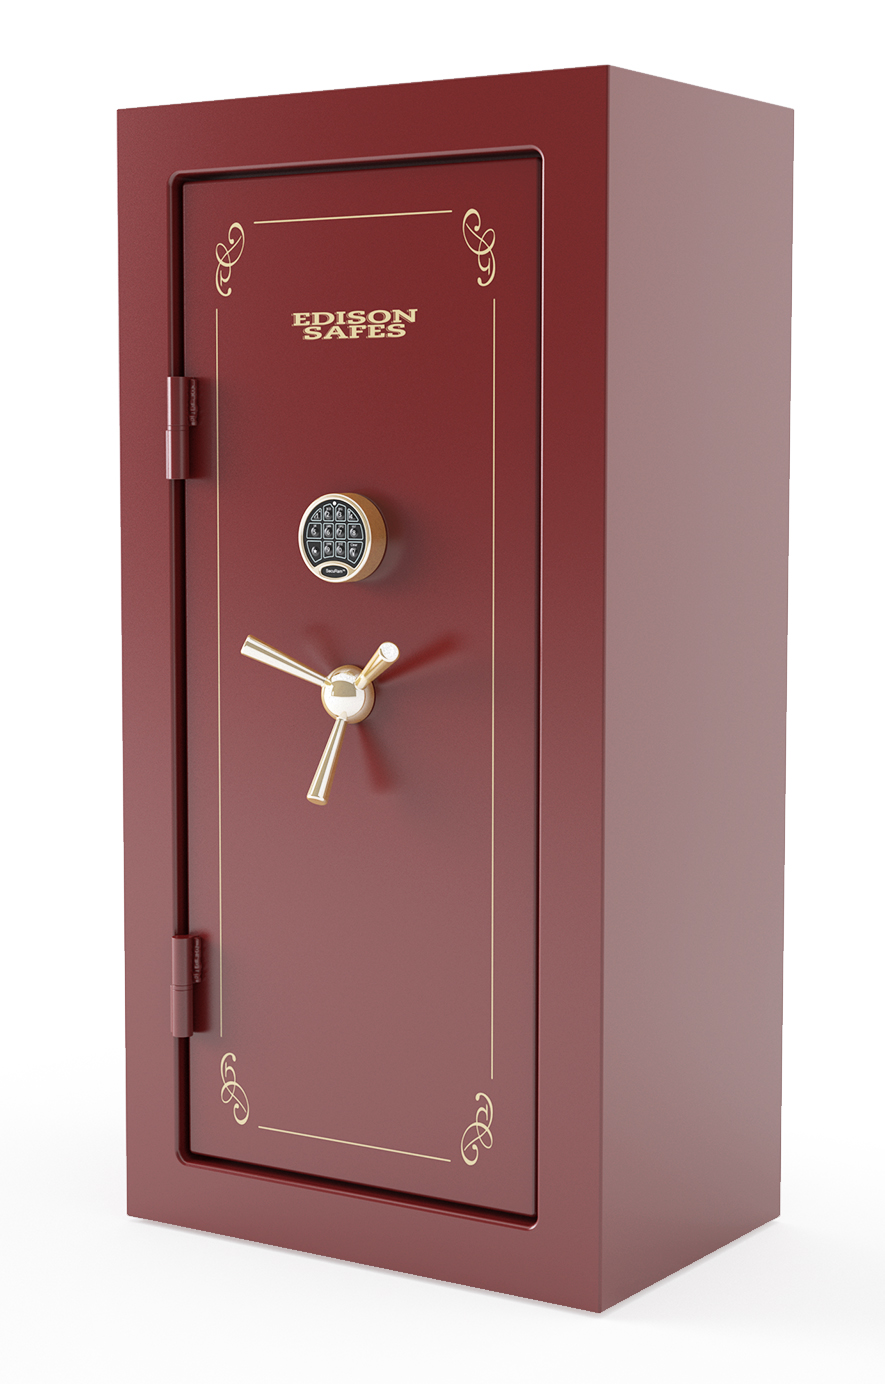 Edison Safes B603024 Blackburn Series 30 120 Minute Fire